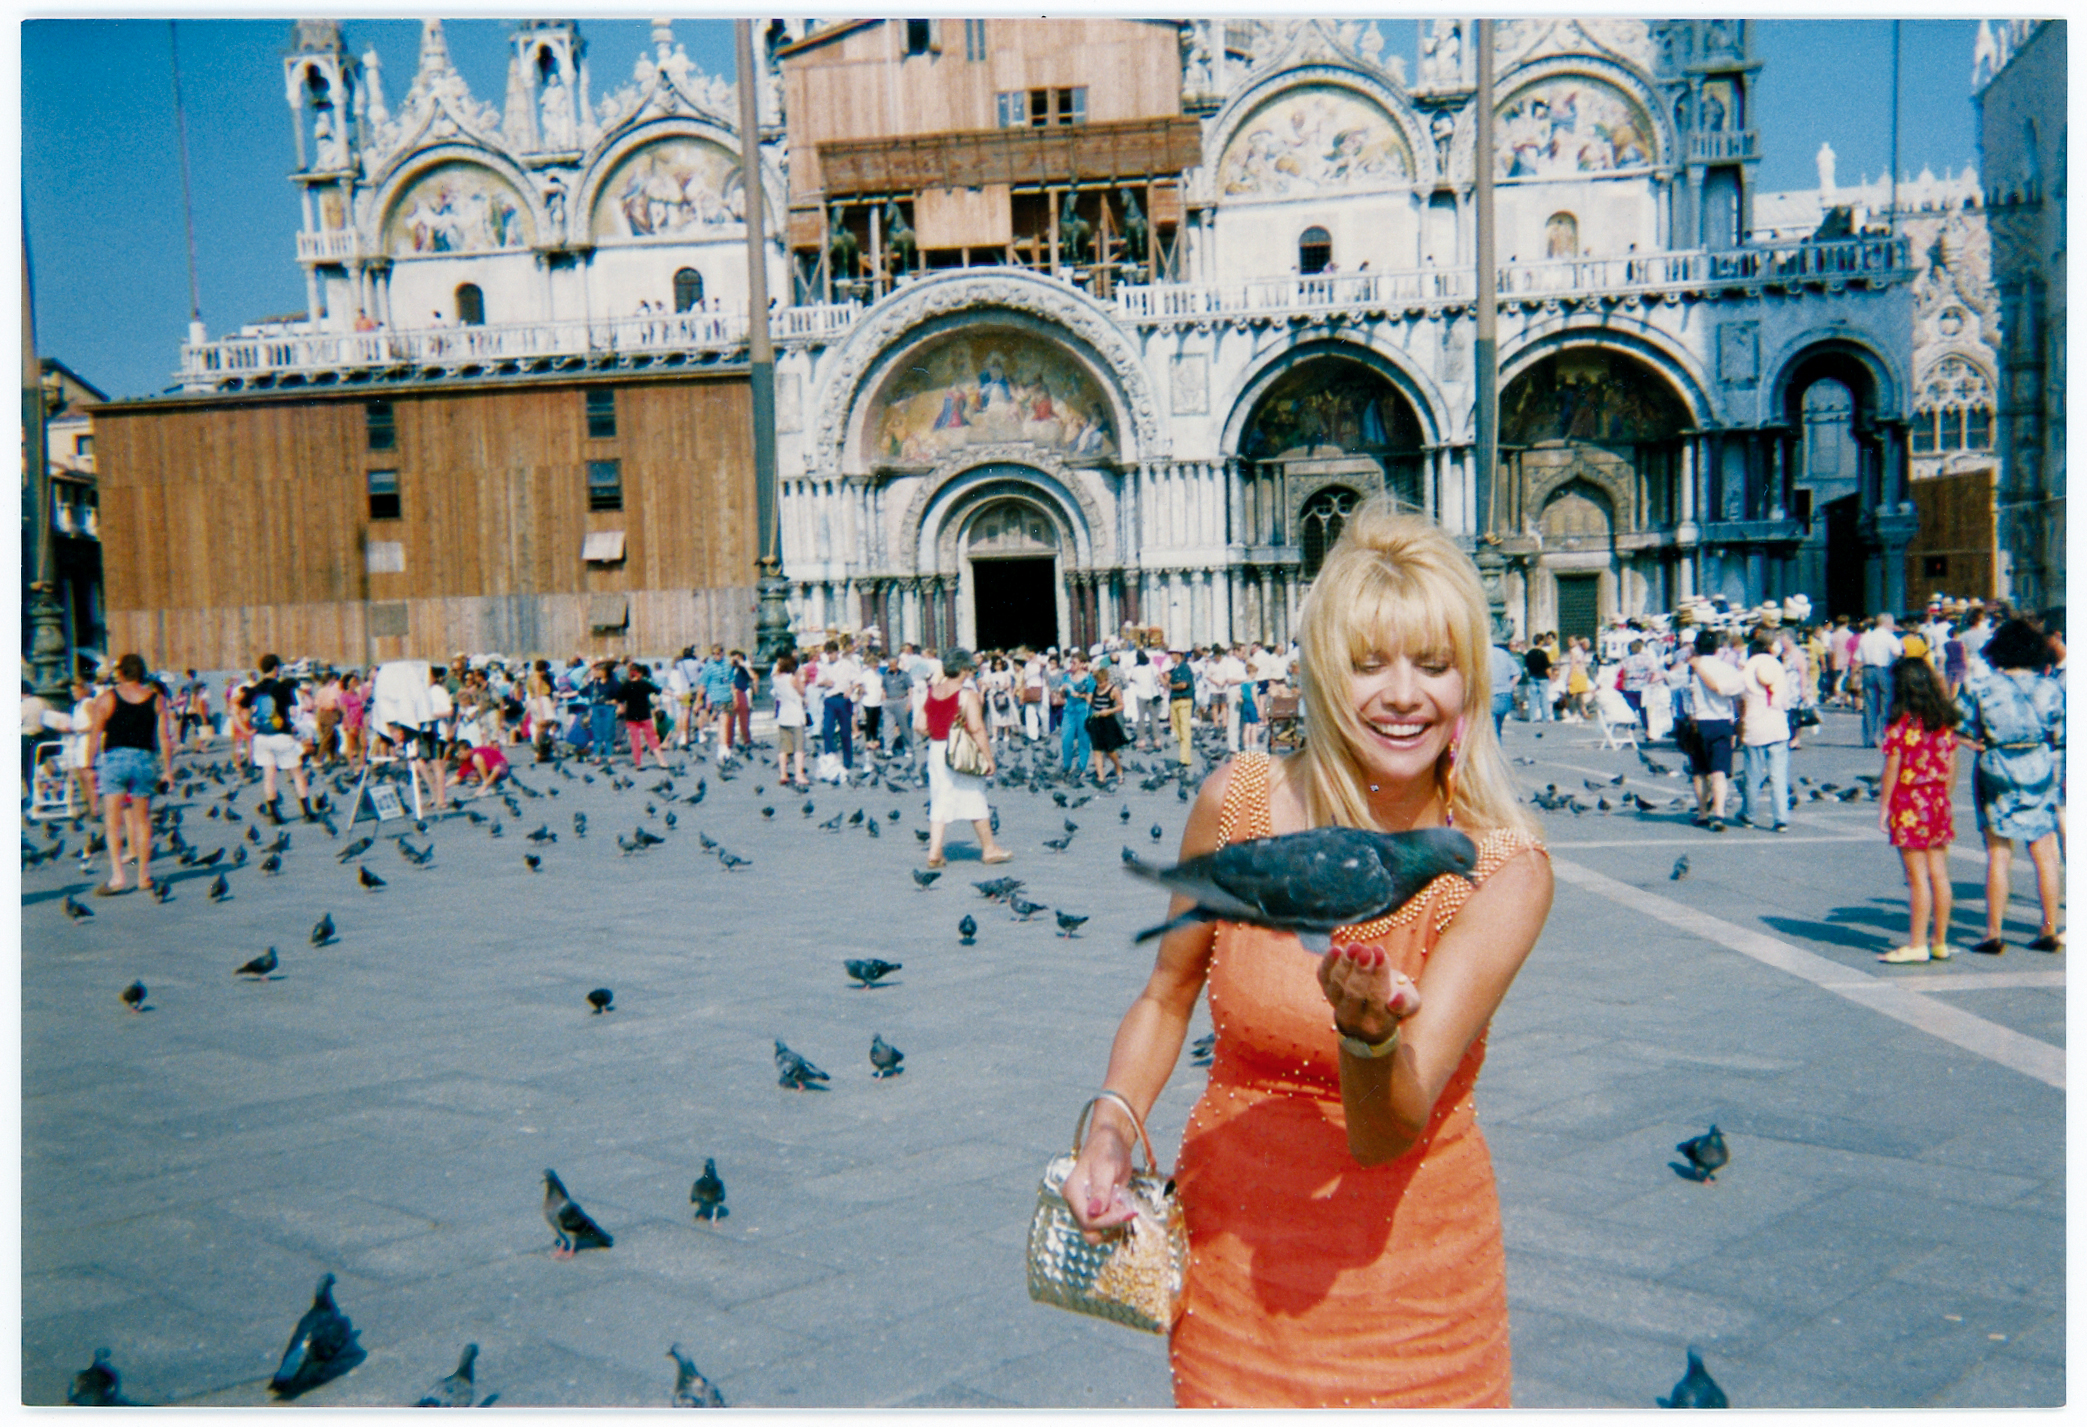 """Making friends                                   with the pigeons in                                   Piazza San Marco,                                   Venice, Italy, circa                                   2005."""